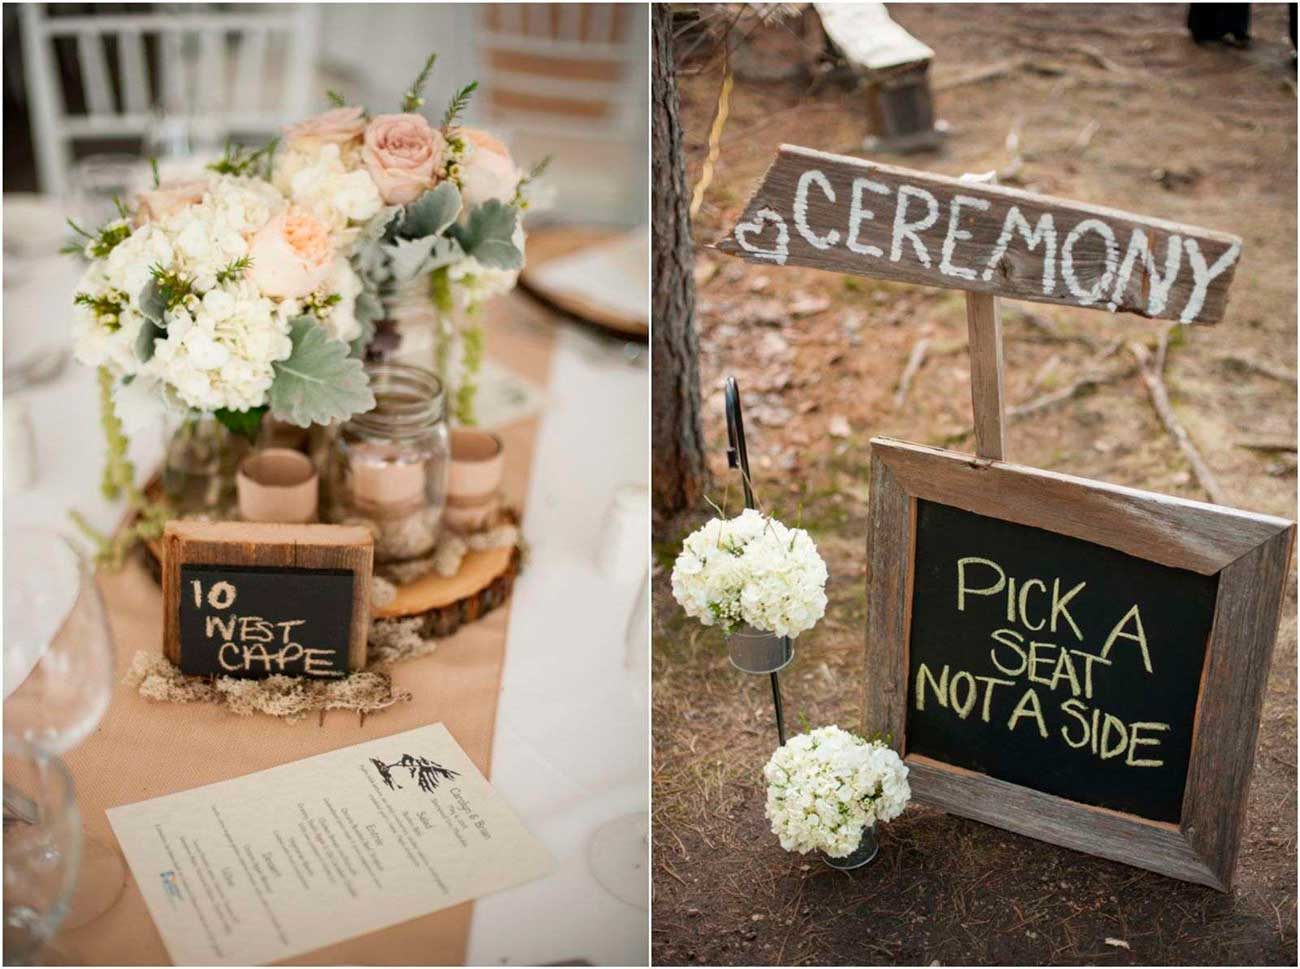 Simple-country-wedding-decorations-chalk